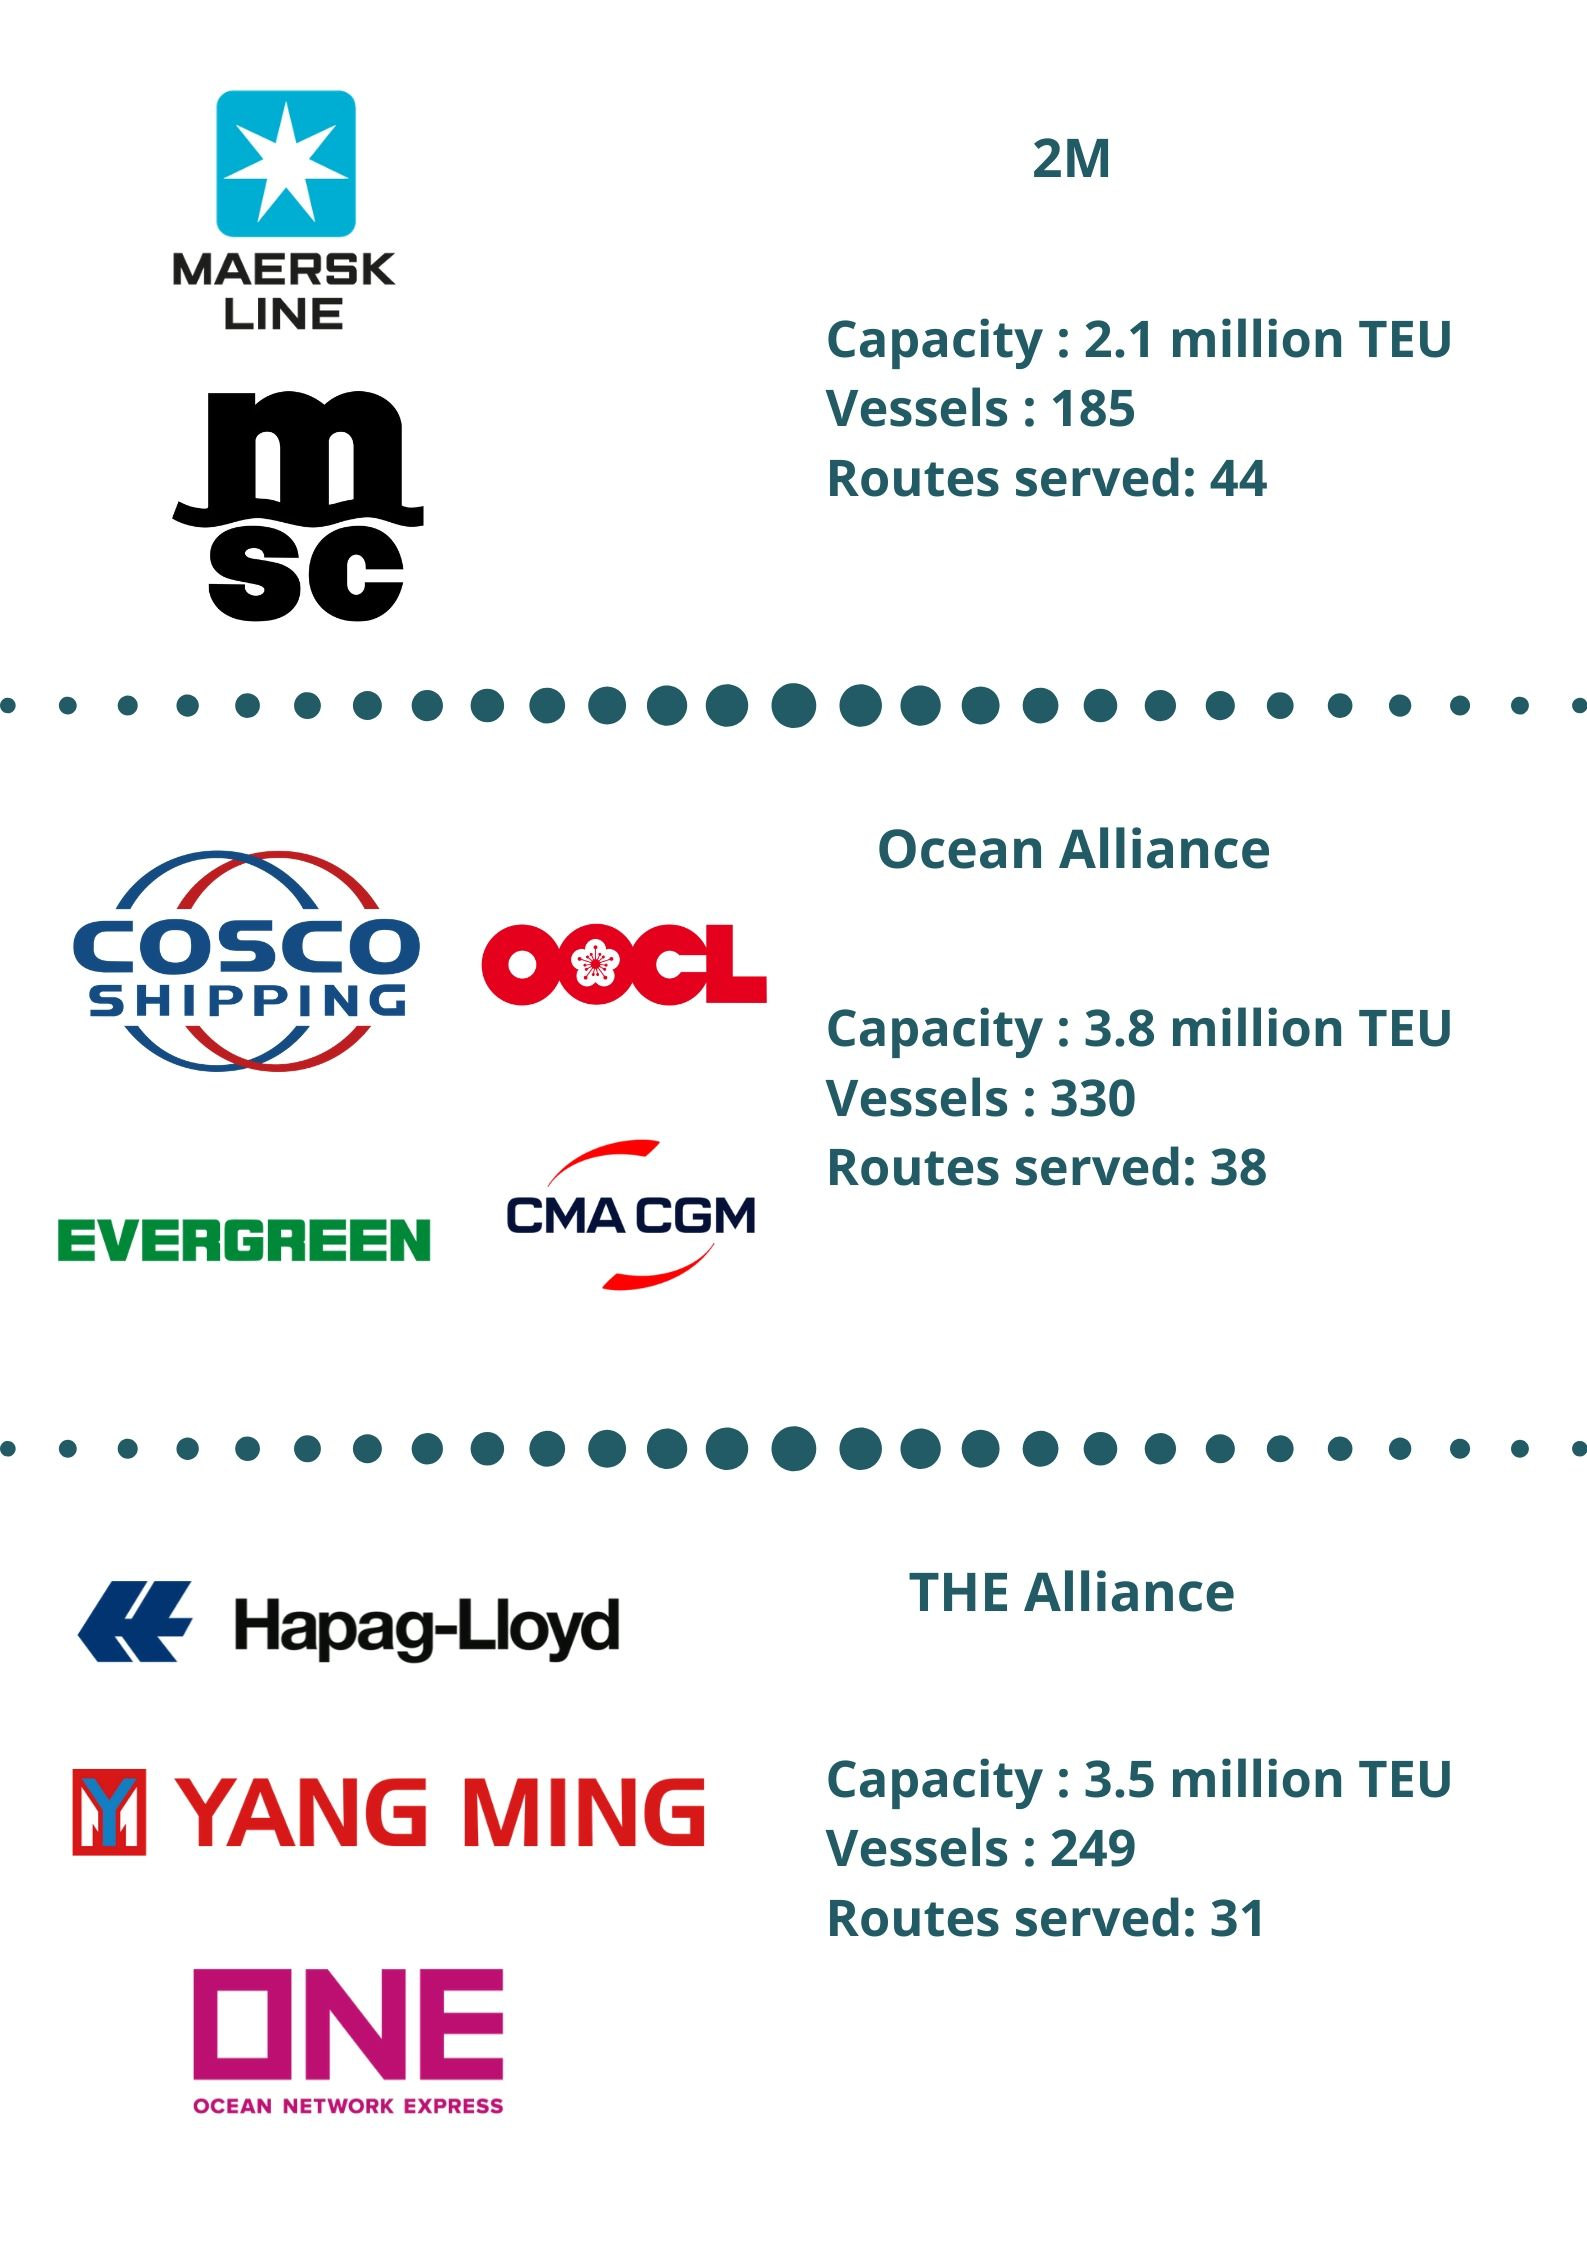 Infograhic of 3M shipping alliance